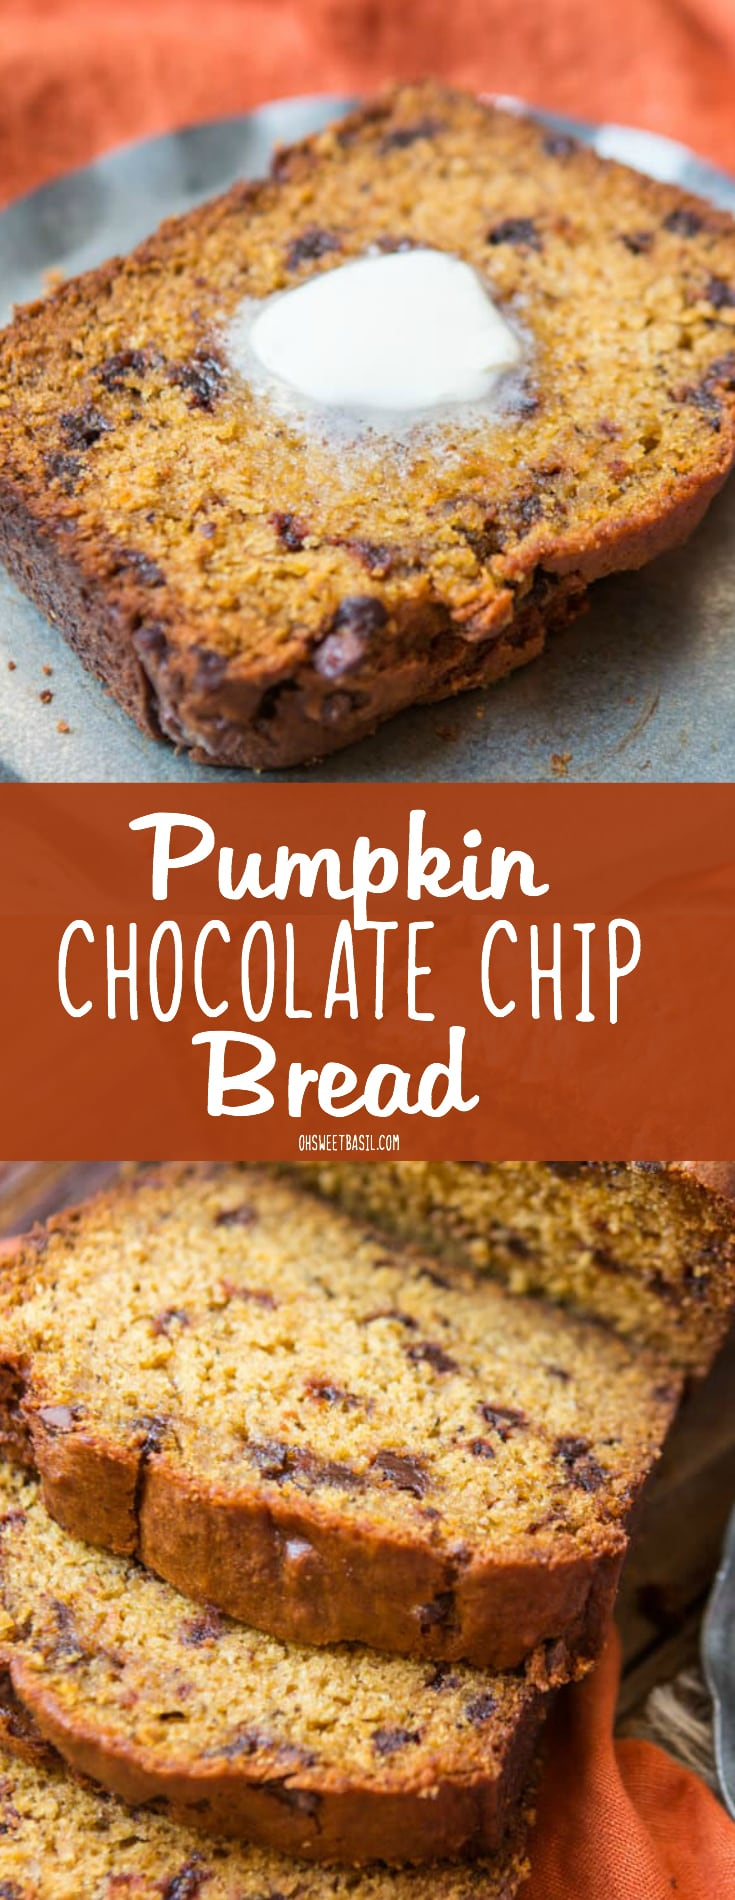 A slice of the most perfect chocolate chip pumpkin bread with melted butter on top